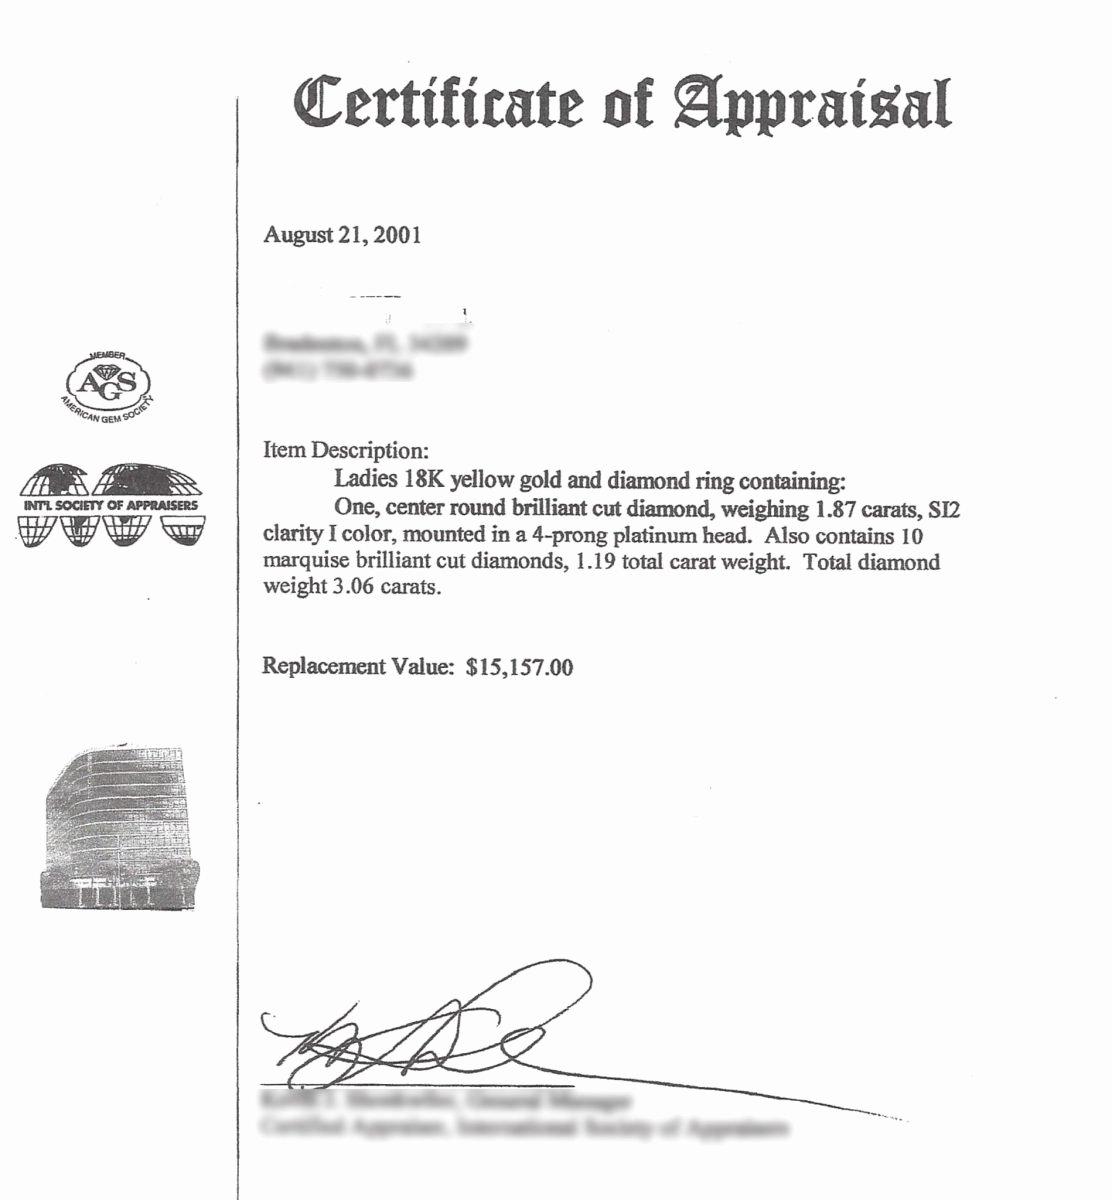 Jewelry Appraisal Certificate Template New Diamond Appraisals From Legit to toilet Paper Part 1